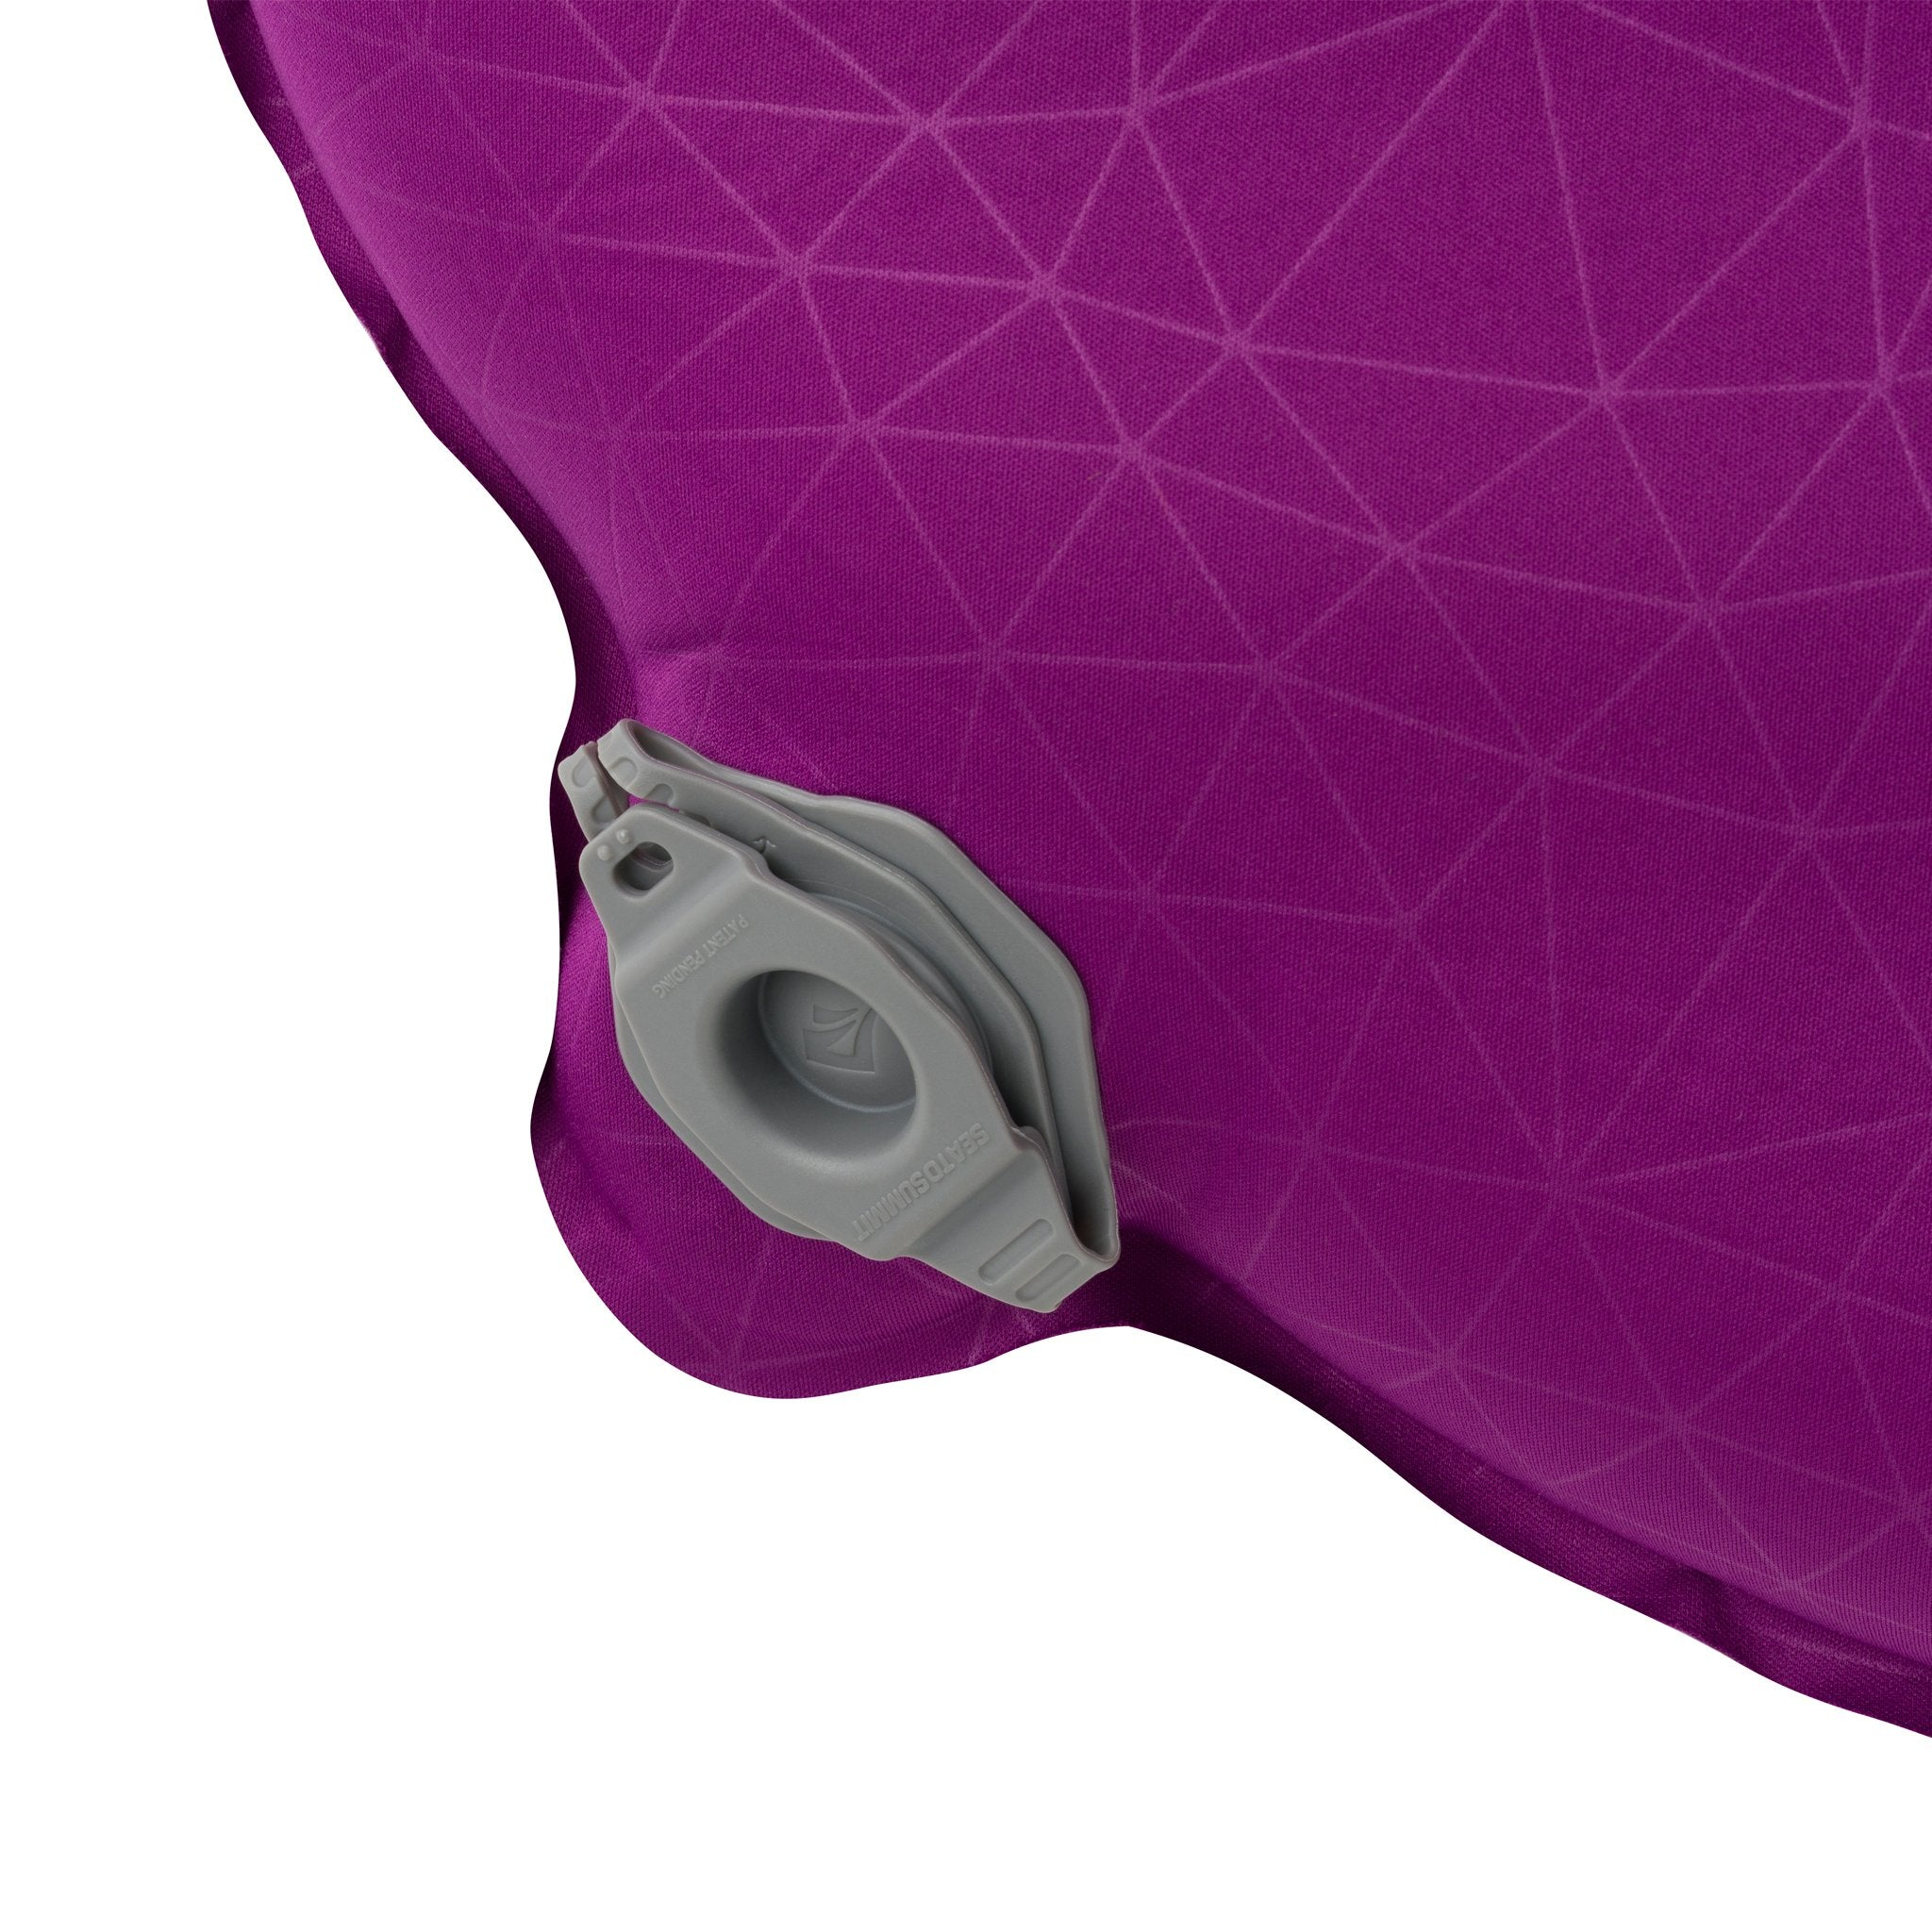 Sea To Summit Comfort Plus SI Sleeping Mat (Women's) - Find Your Feet Australia Hobart Launceston Tasmania